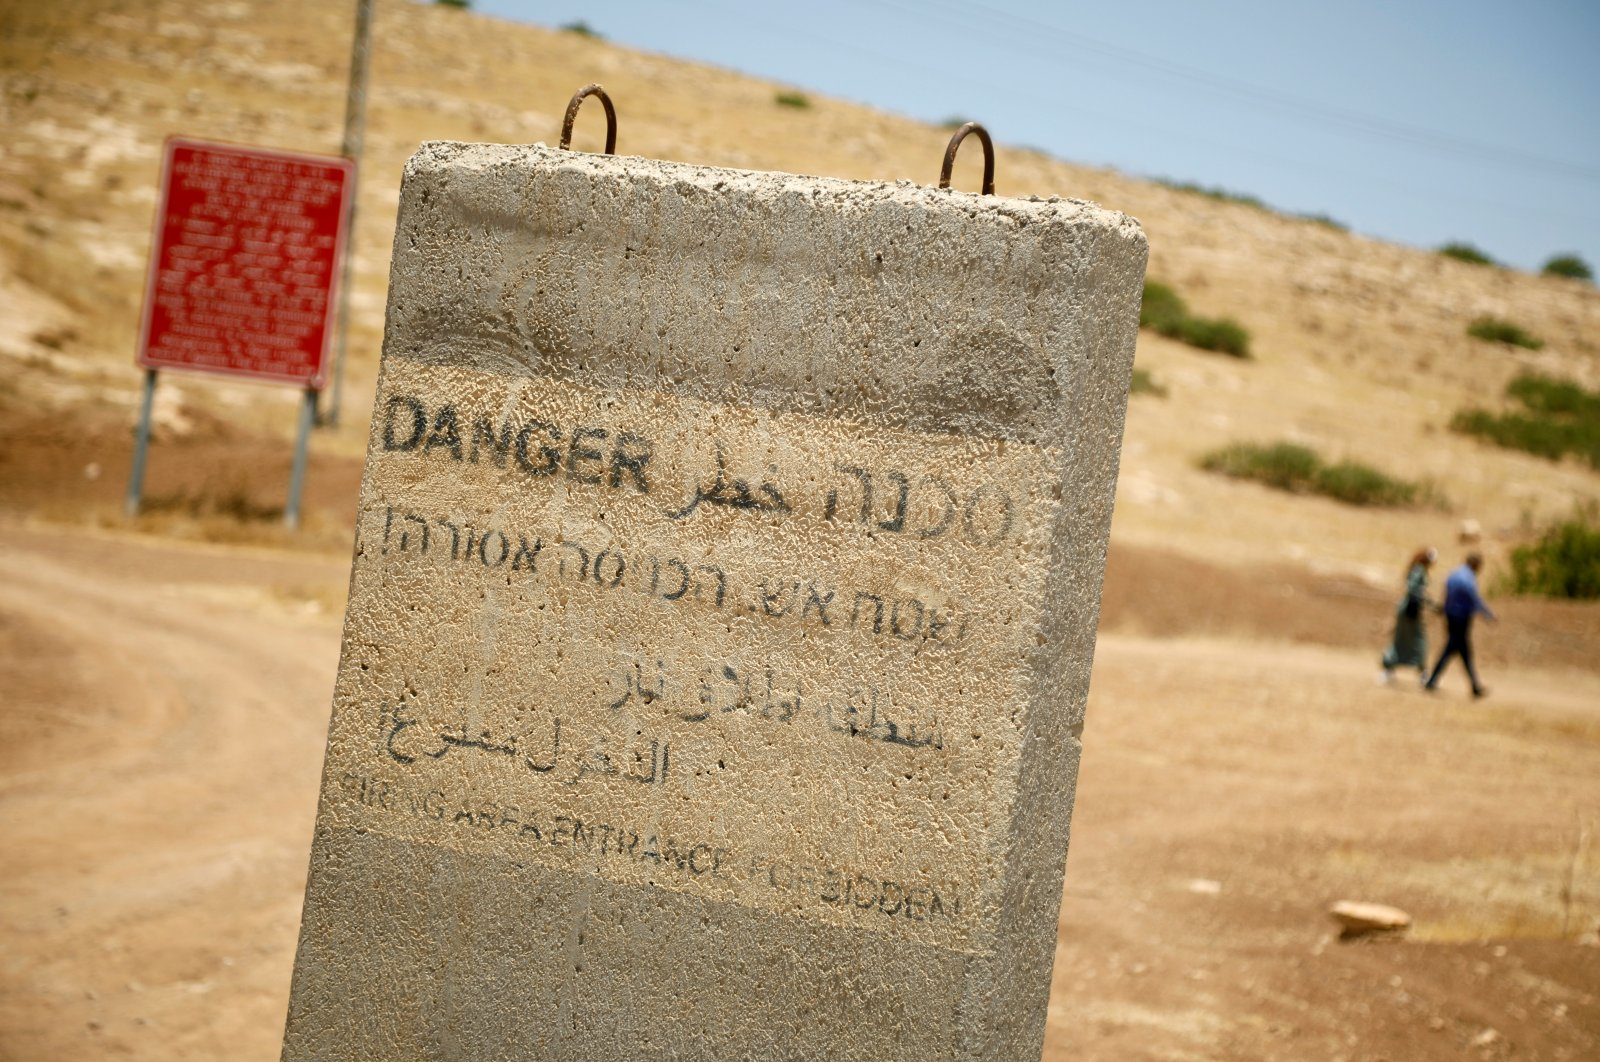 A concrete barrier with writings warning against entering into a firing area is seen in the Jordan Valley in the Israeli-occupied West Bank, Palestine, June 13, 2020. (Reuters Photo)